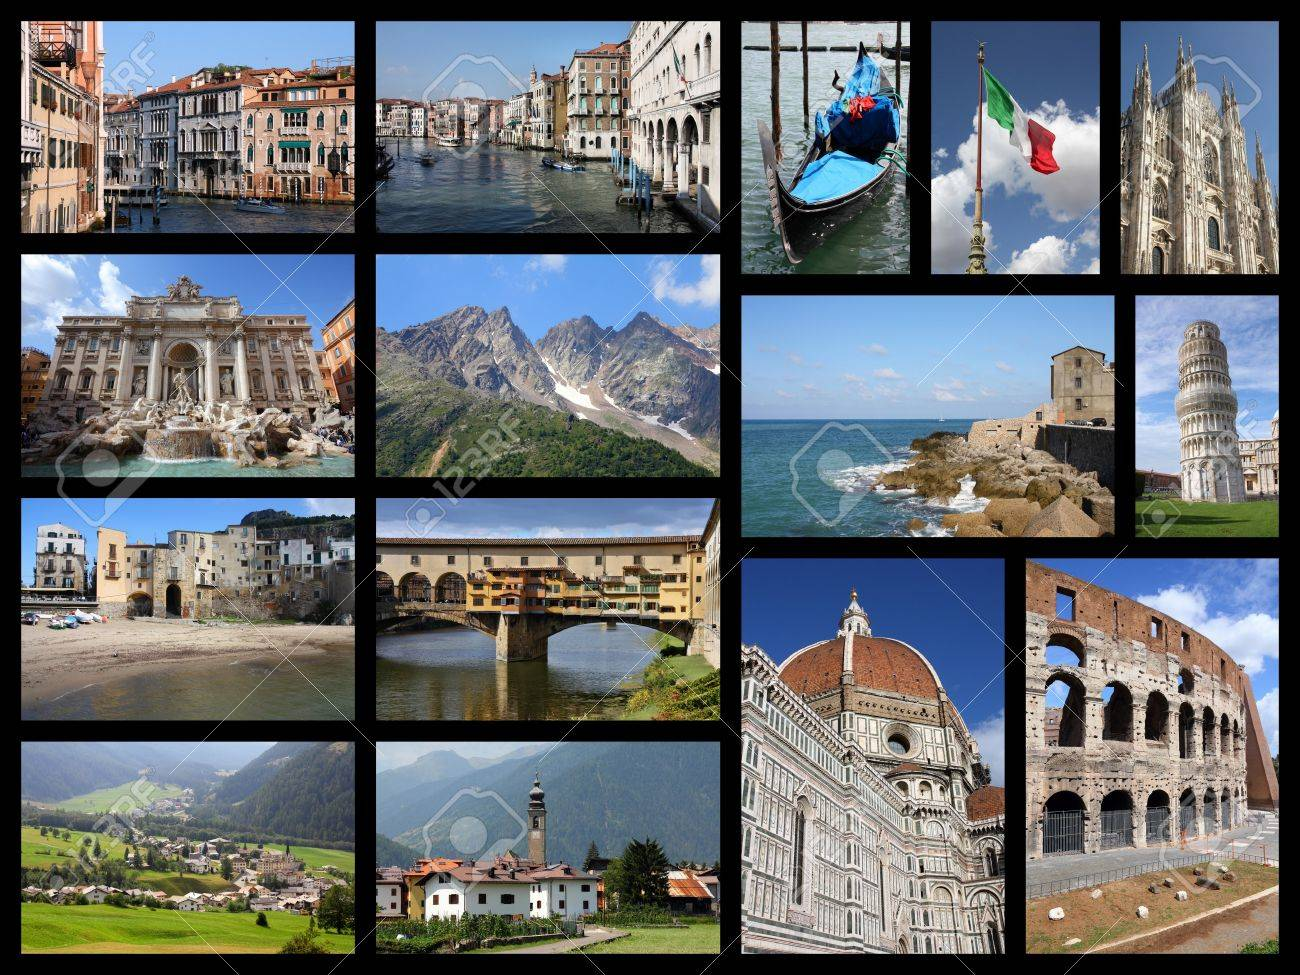 italy tourism attractions travel photo collage with rome venice